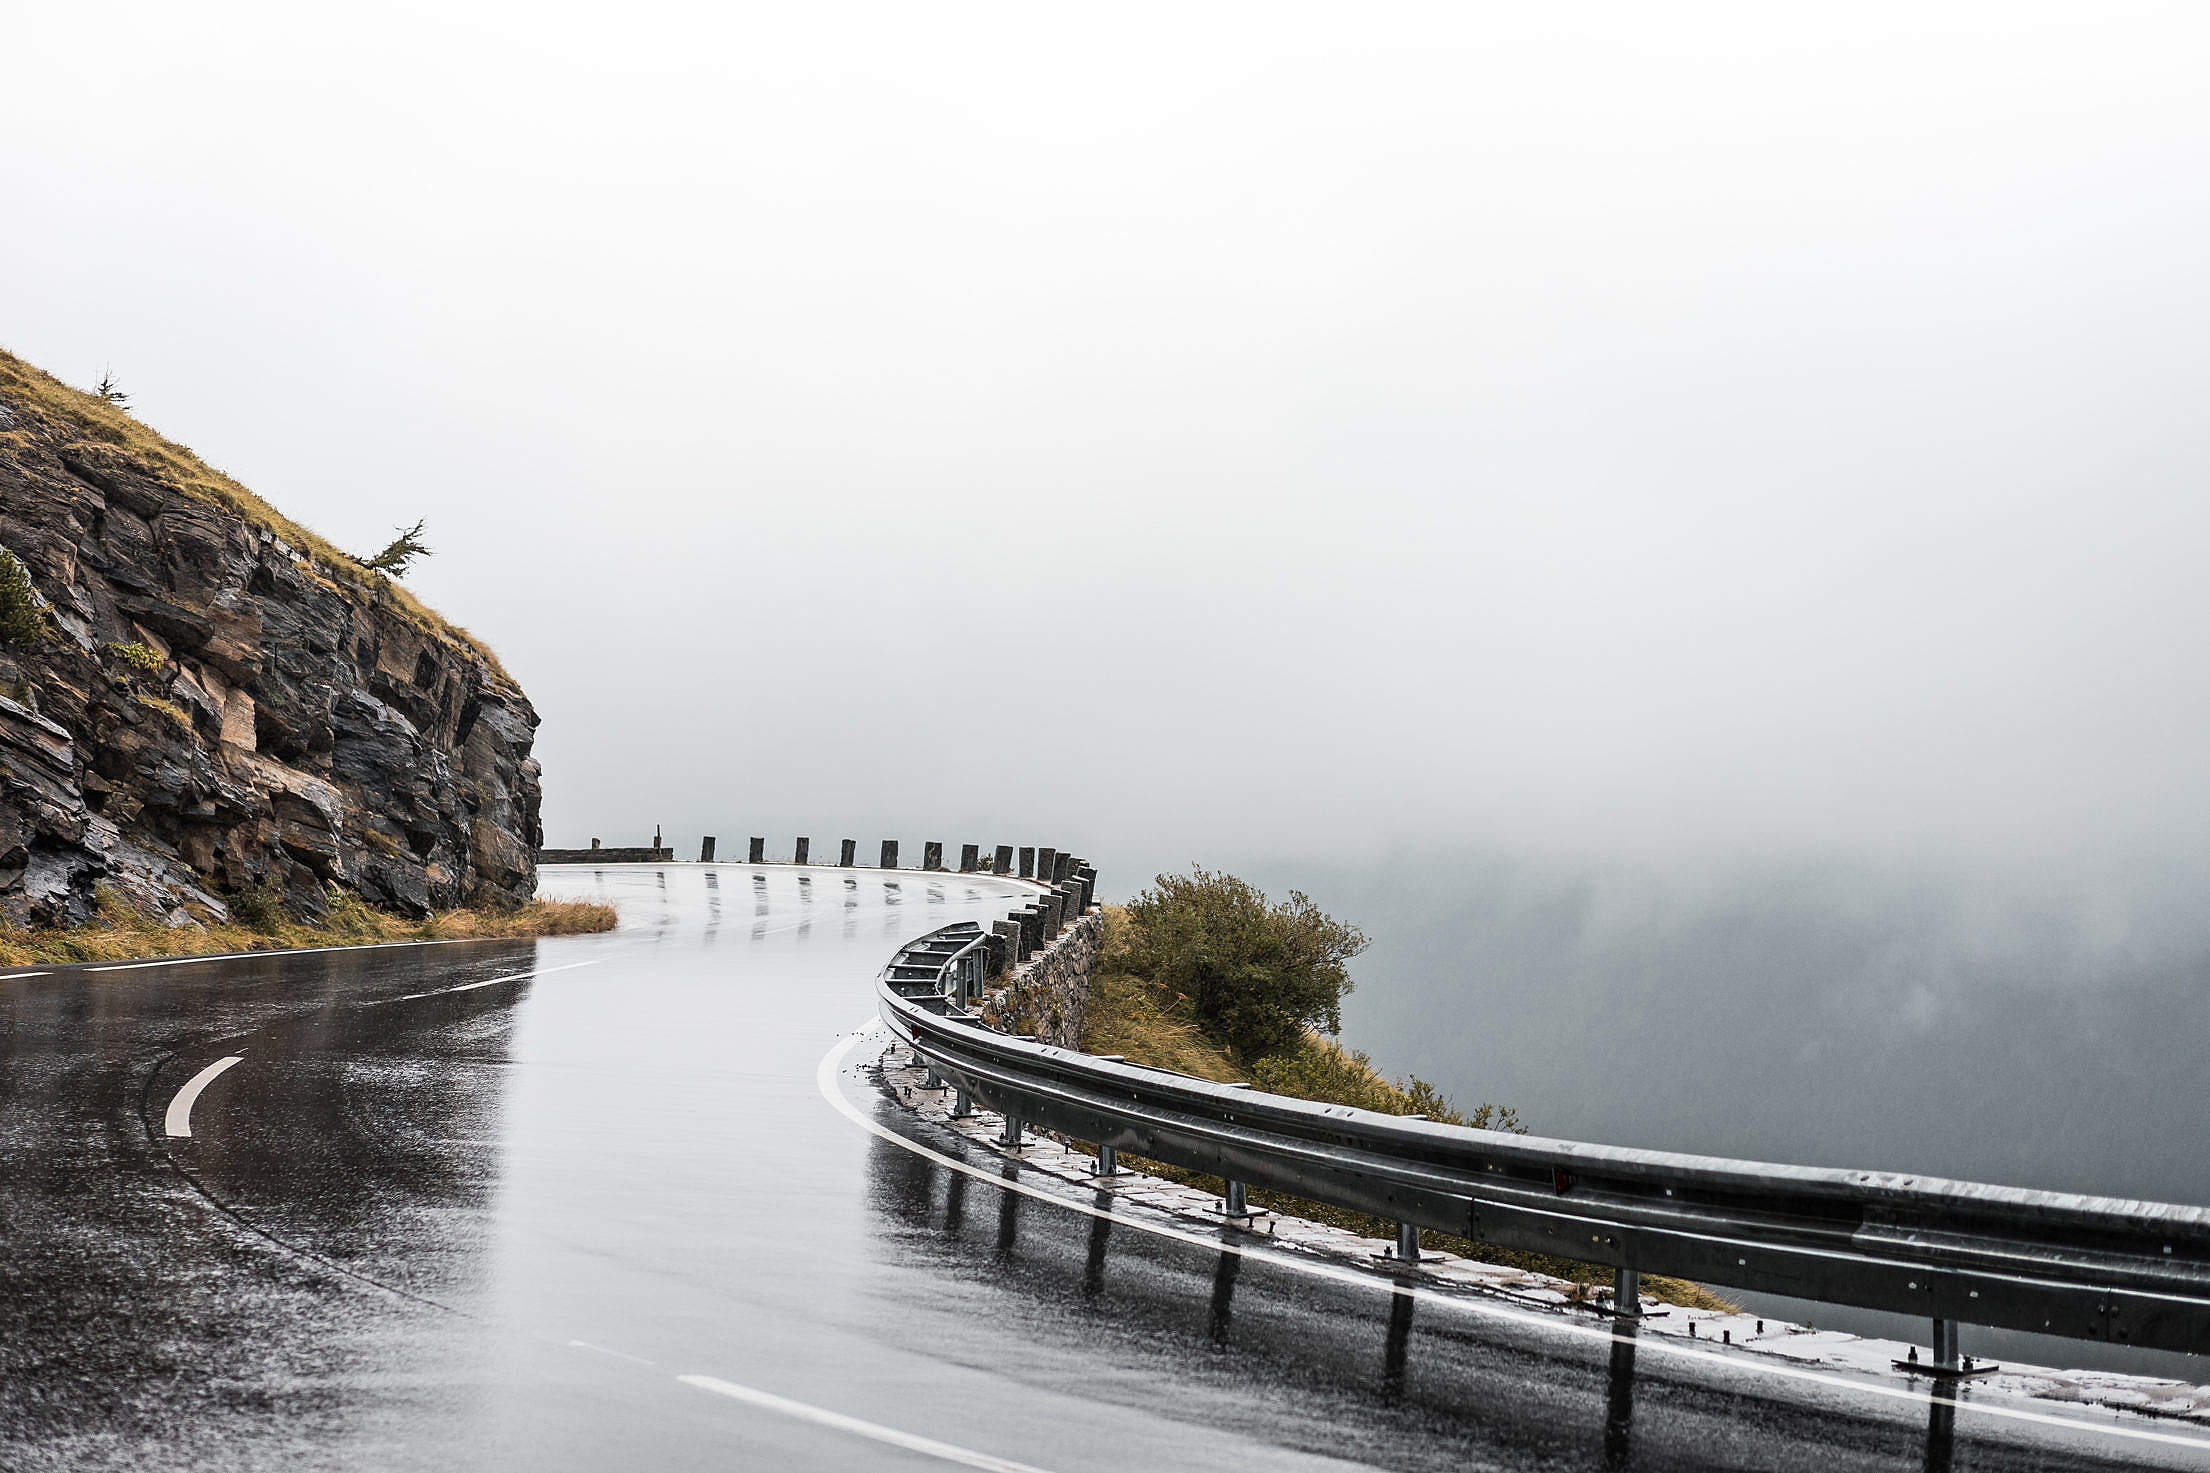 Rainy Road on Grossglockner, Austria Free Stock Photo